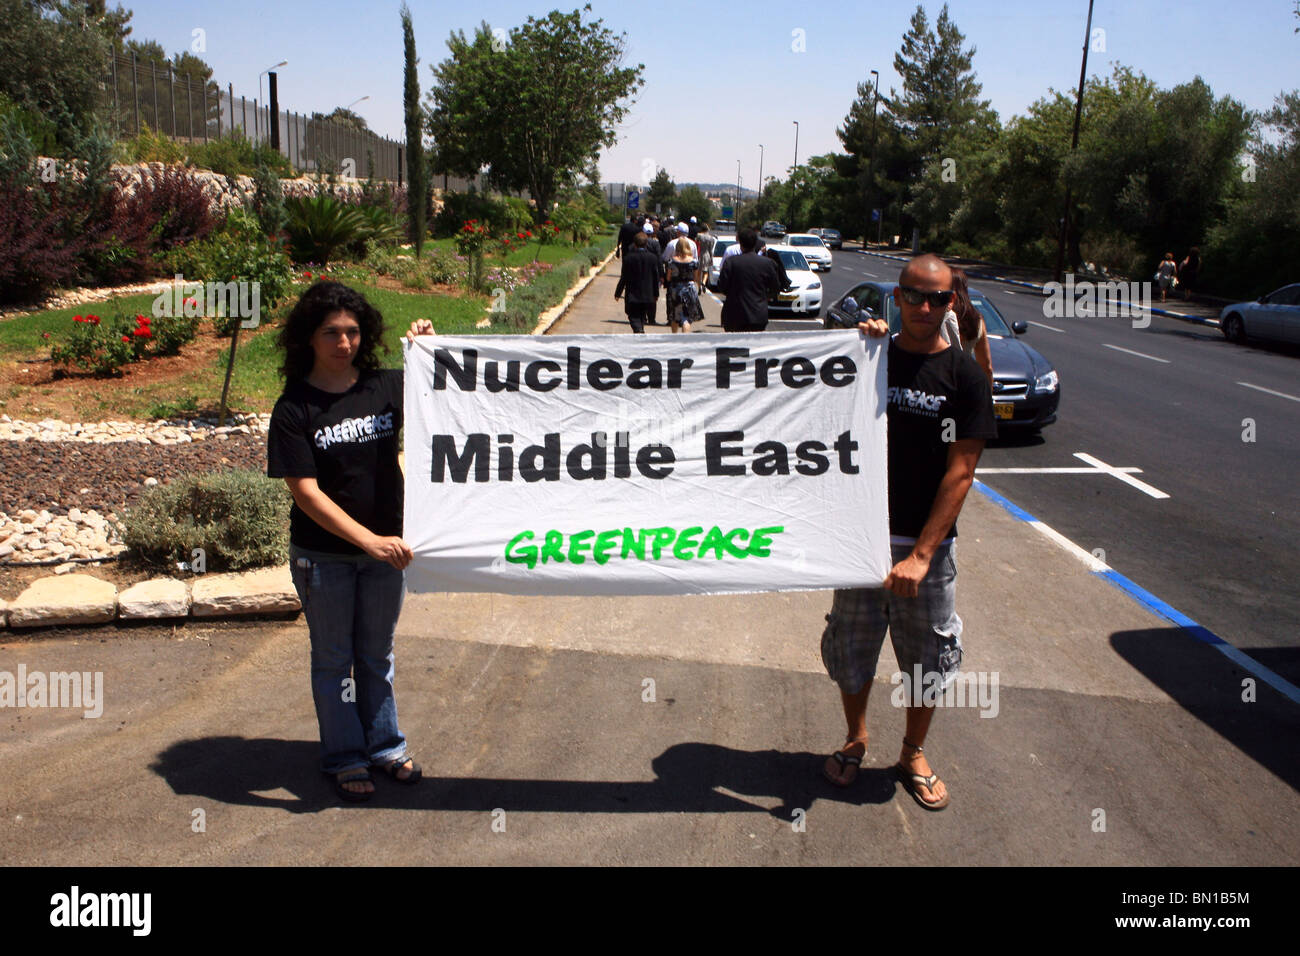 Nuclear Free Middle East - Stock Image